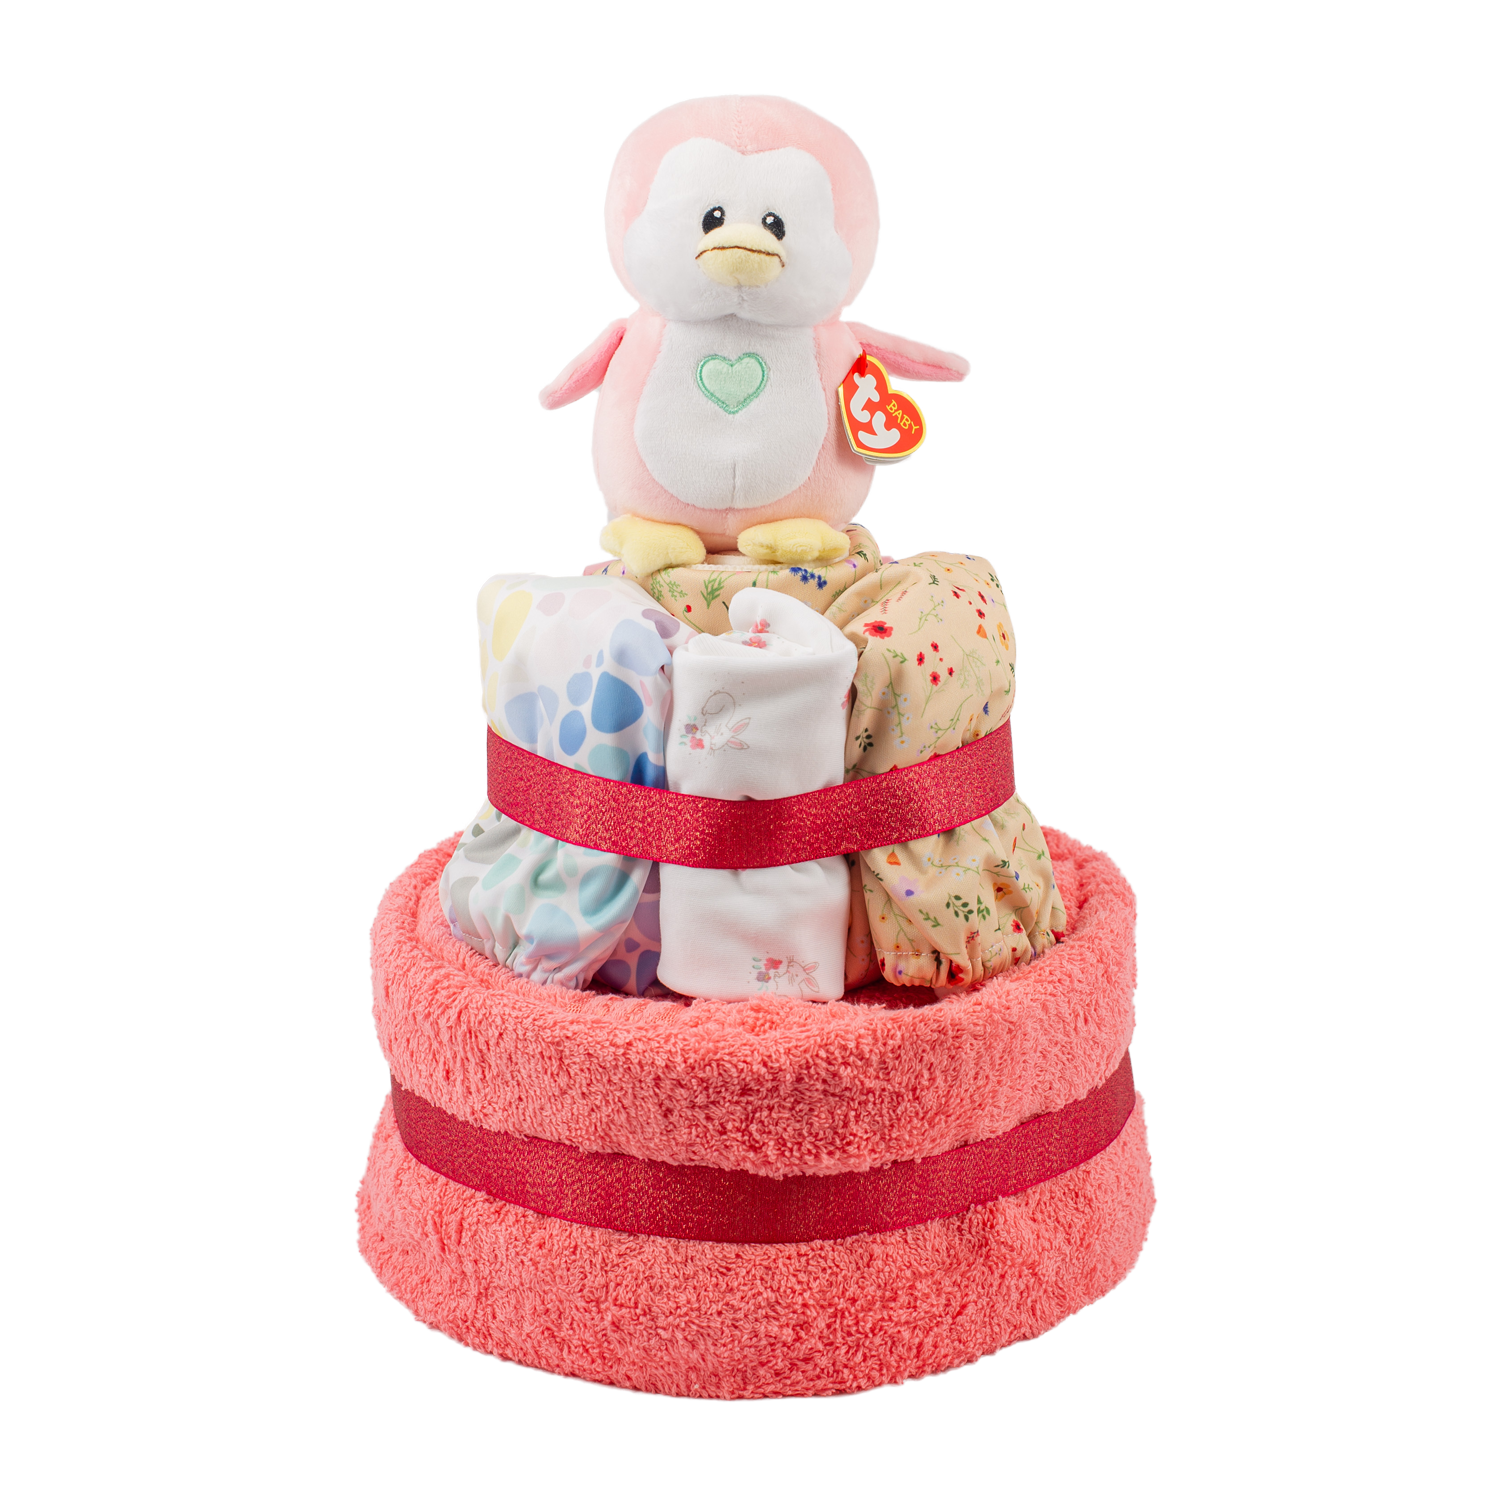 Starter Cloth Nappy Cake - Pink Baba & Boo/Little Lamb